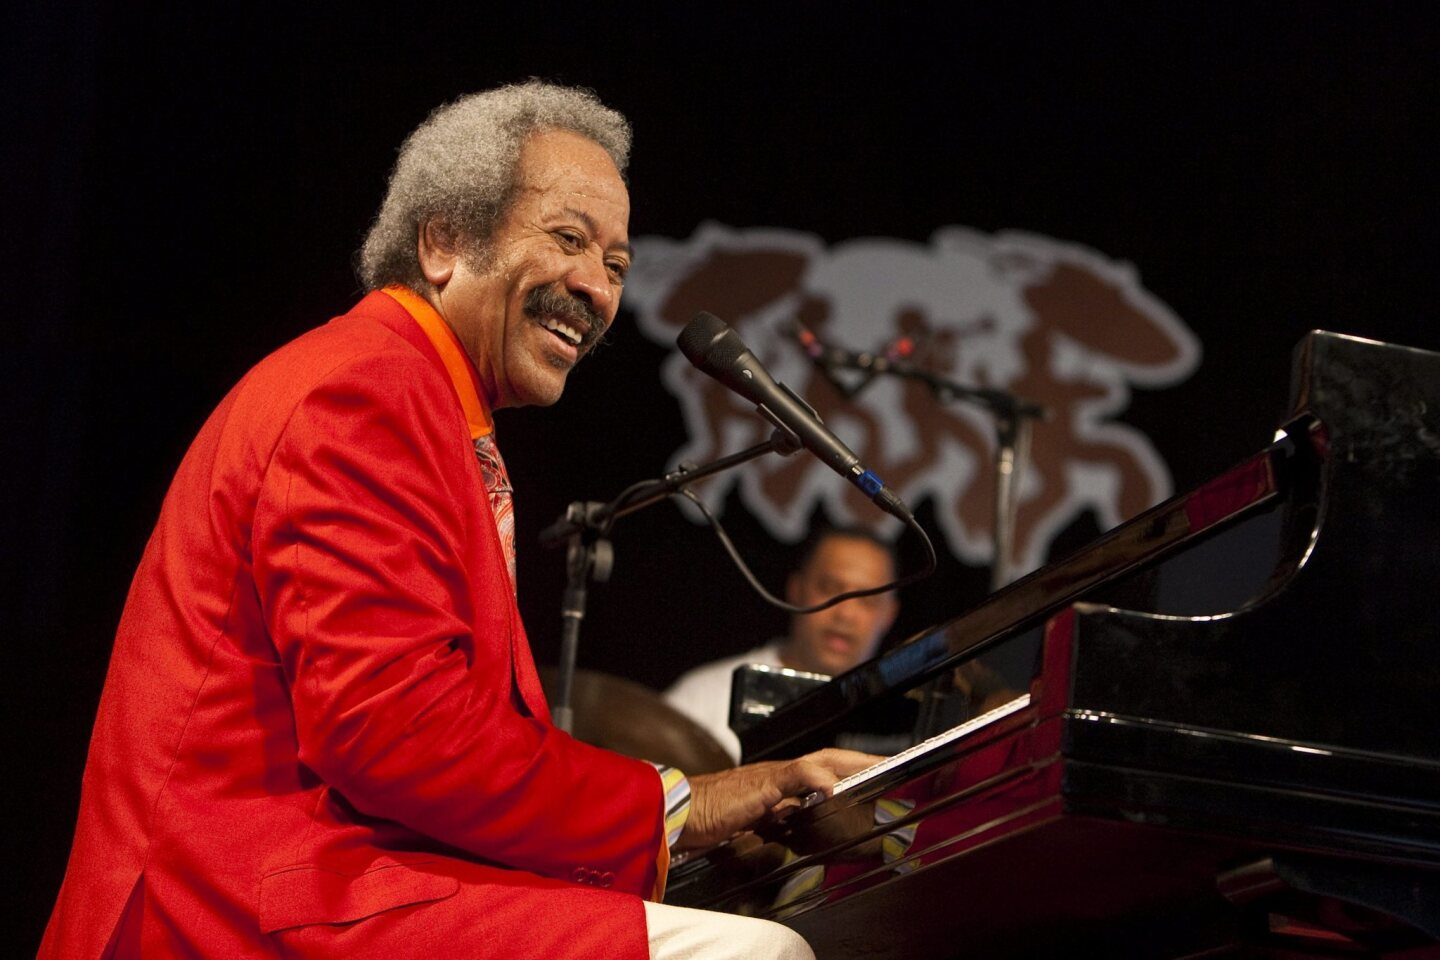 New Orleans musician, composer and record producer Allen Toussaint performing on the Jazz Tent stage at the New Orleans Jazz and Heritage Festival in 2010. Toussaint died in Spain after a performance.